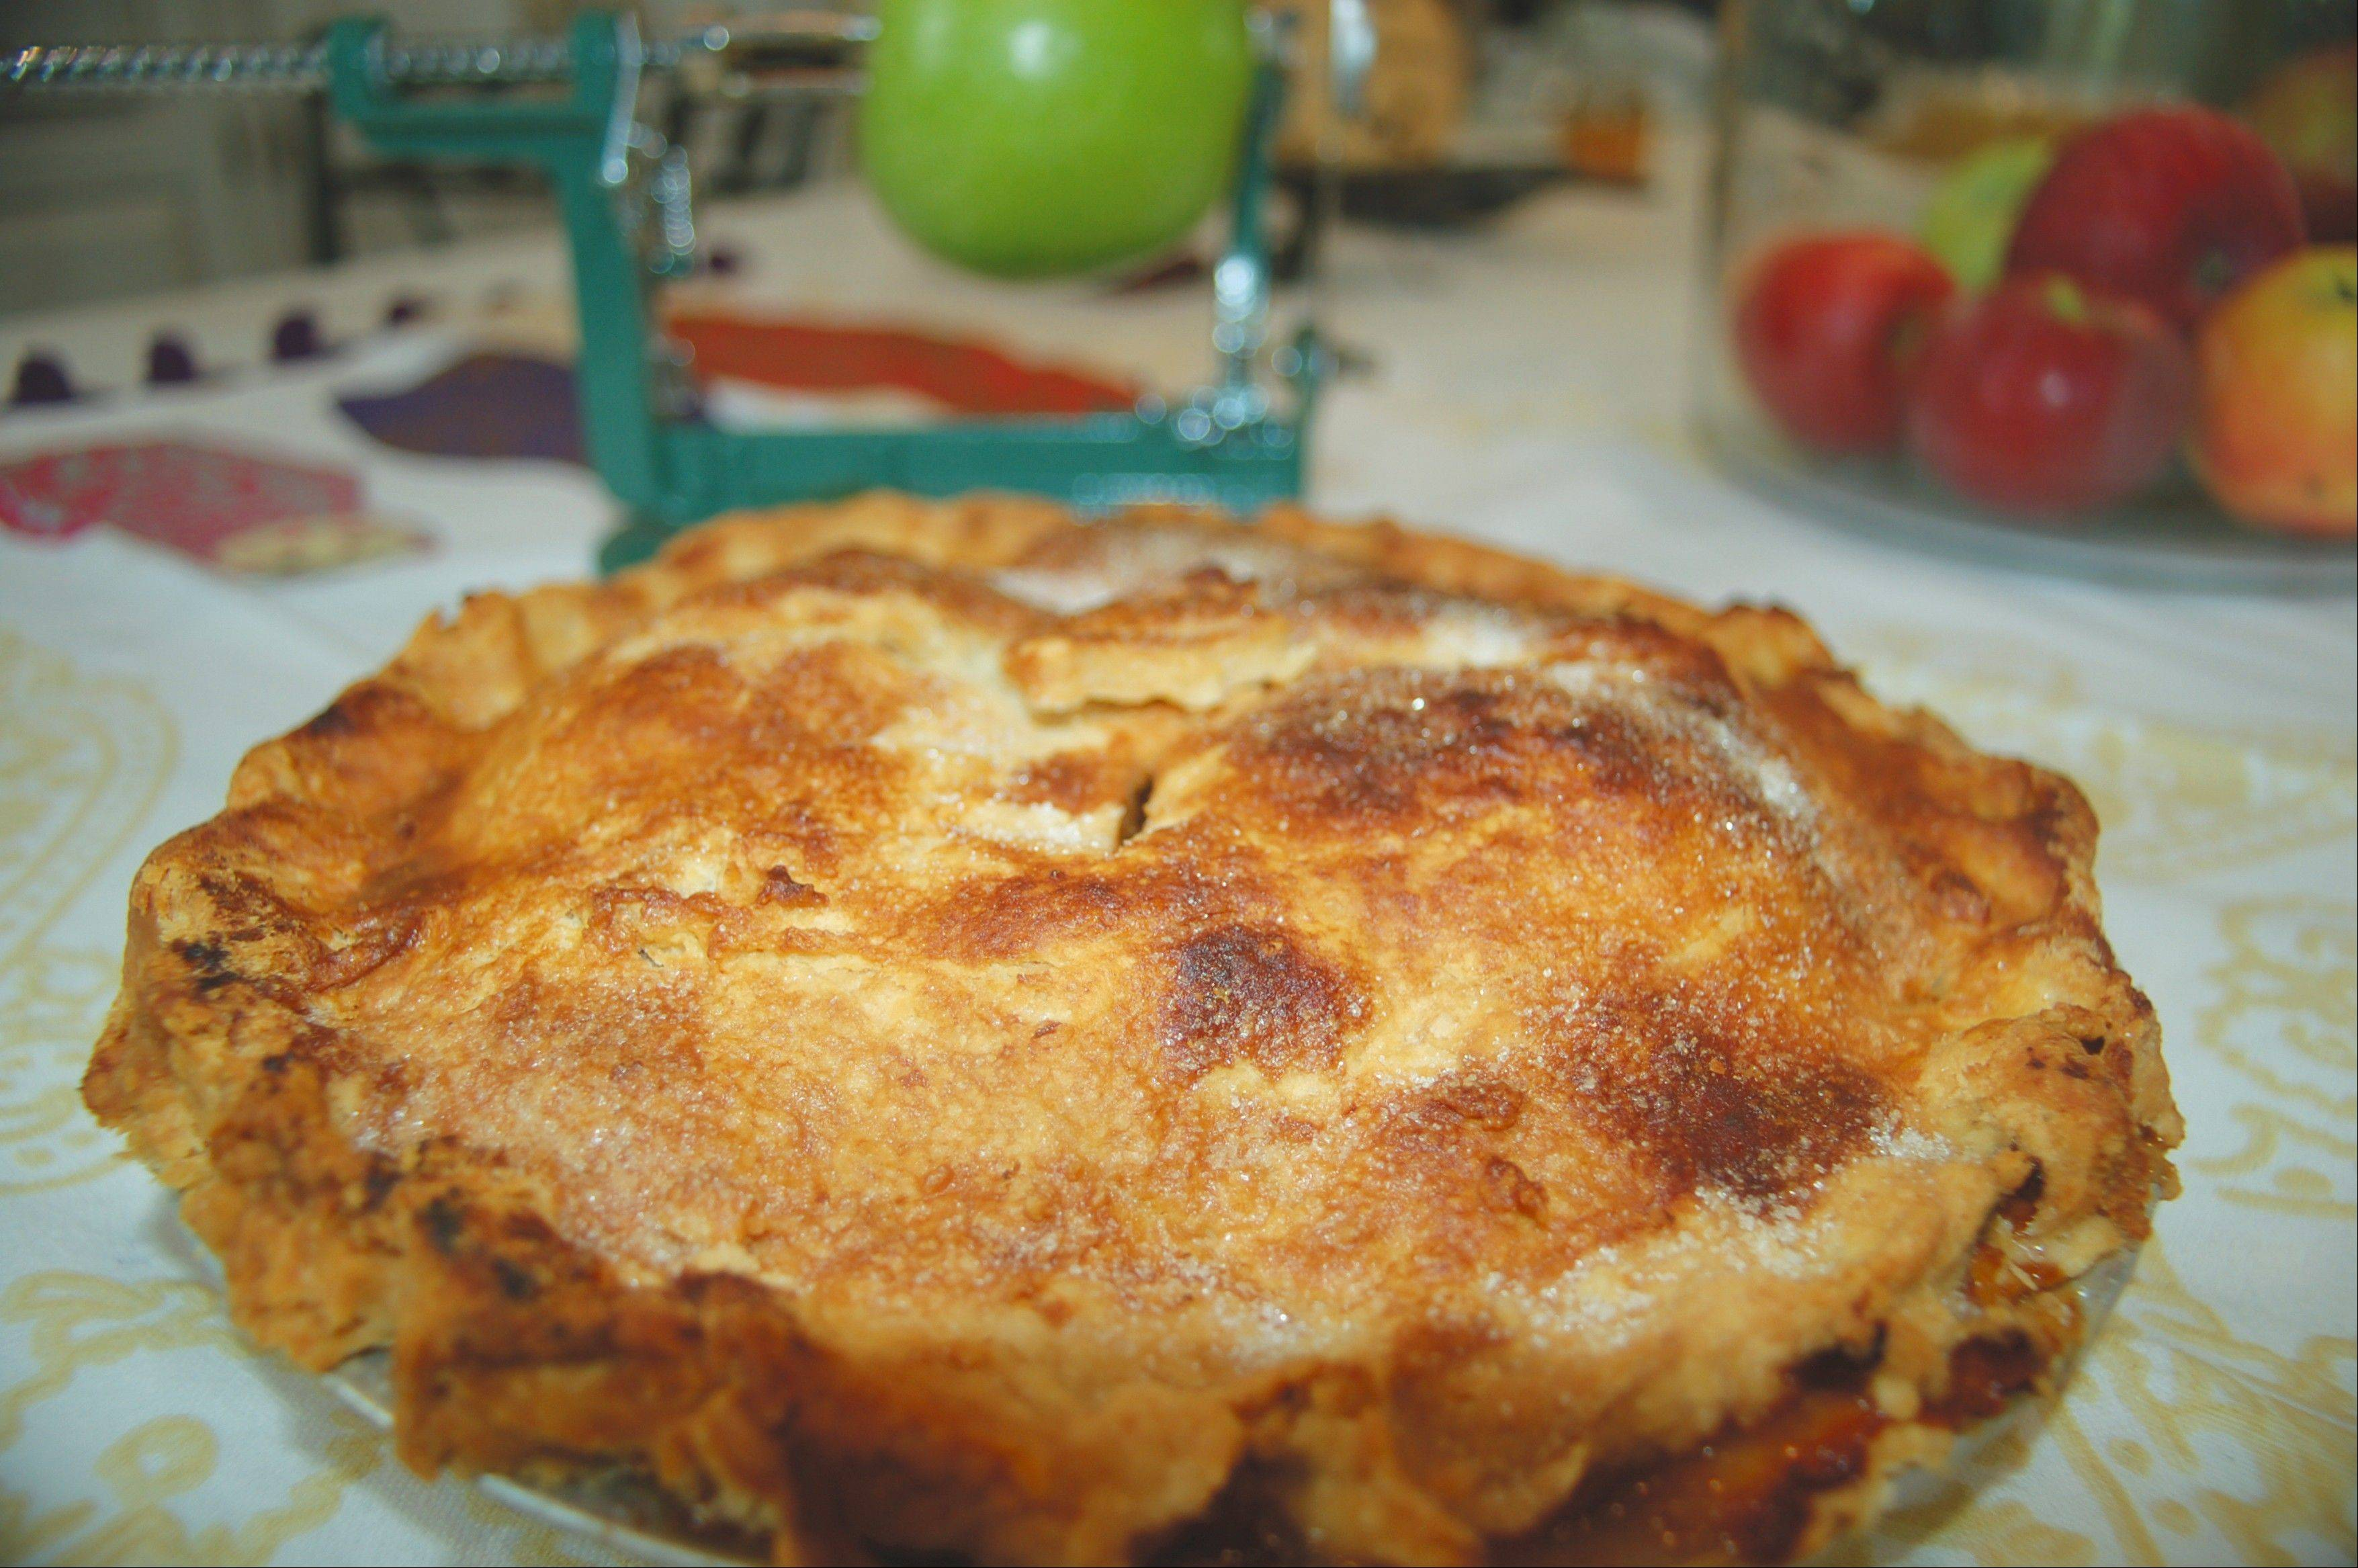 Apple cider and tapicoa work together to create a tangy filling Sweet Cider Apple Pie.